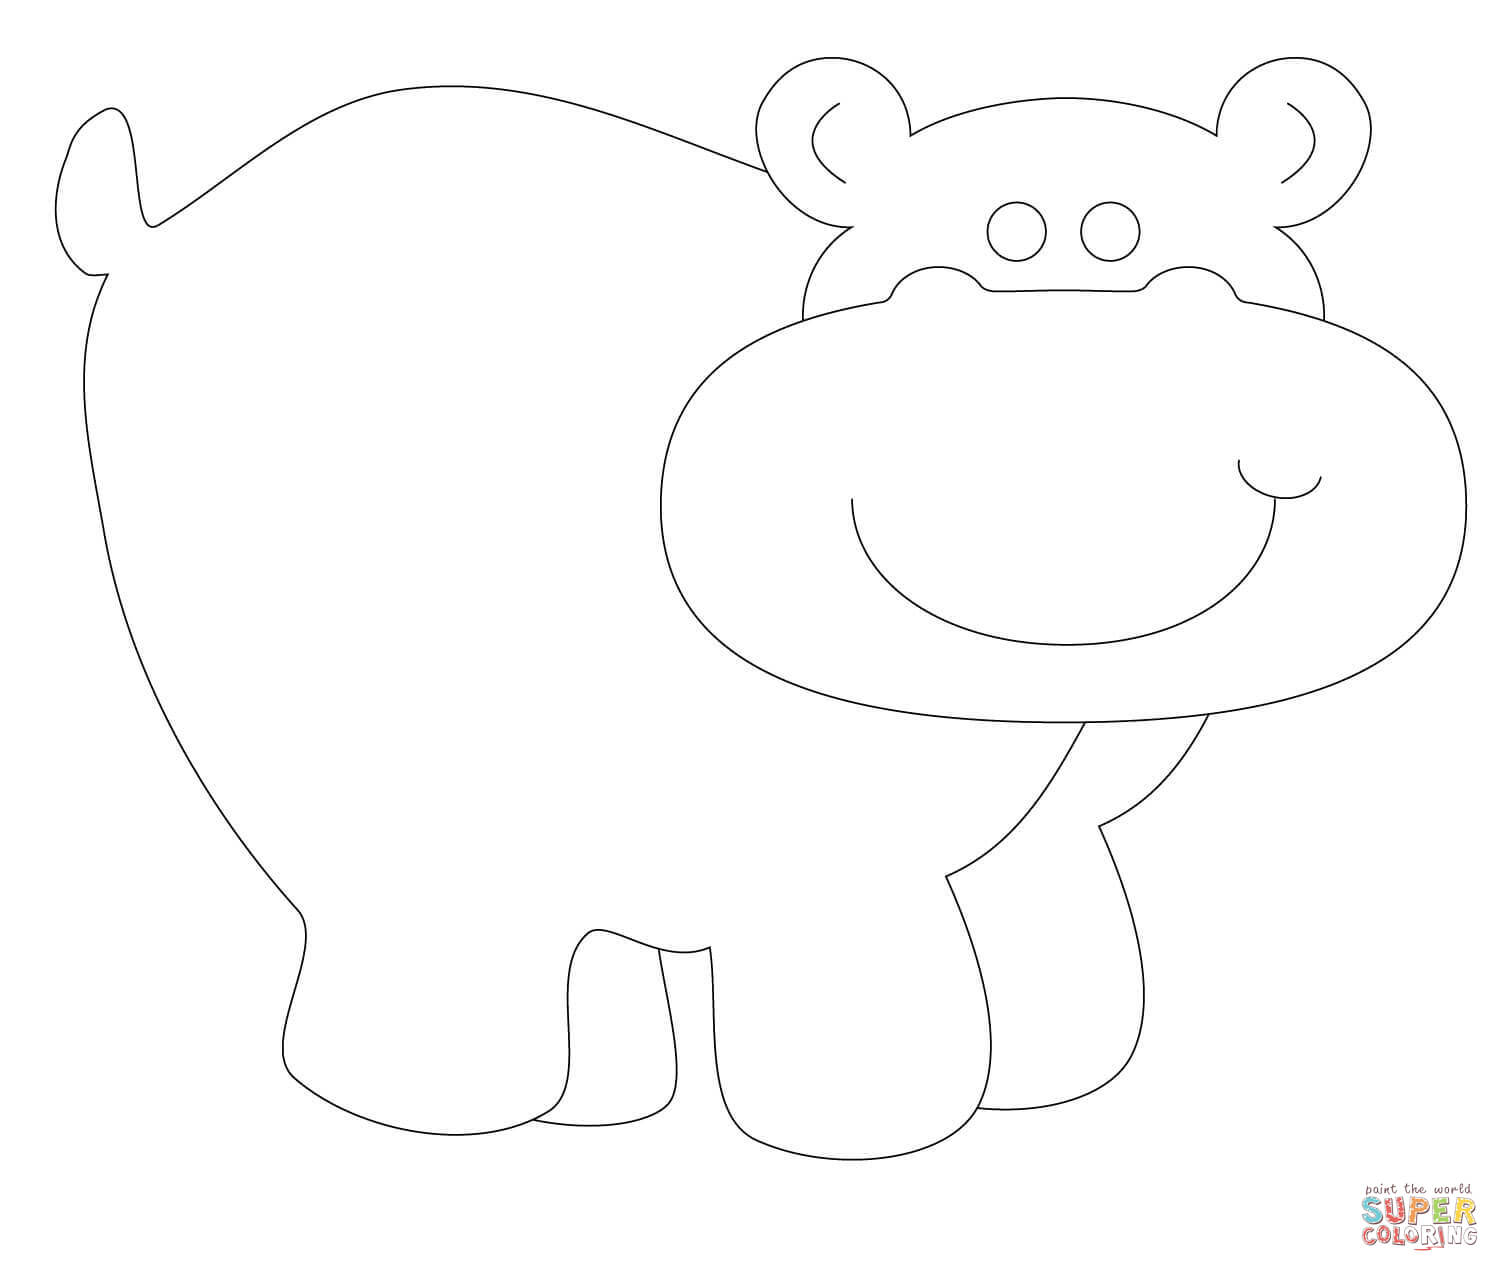 hippo outline drawing cartoon hippo drawing at getdrawings free download hippo outline drawing